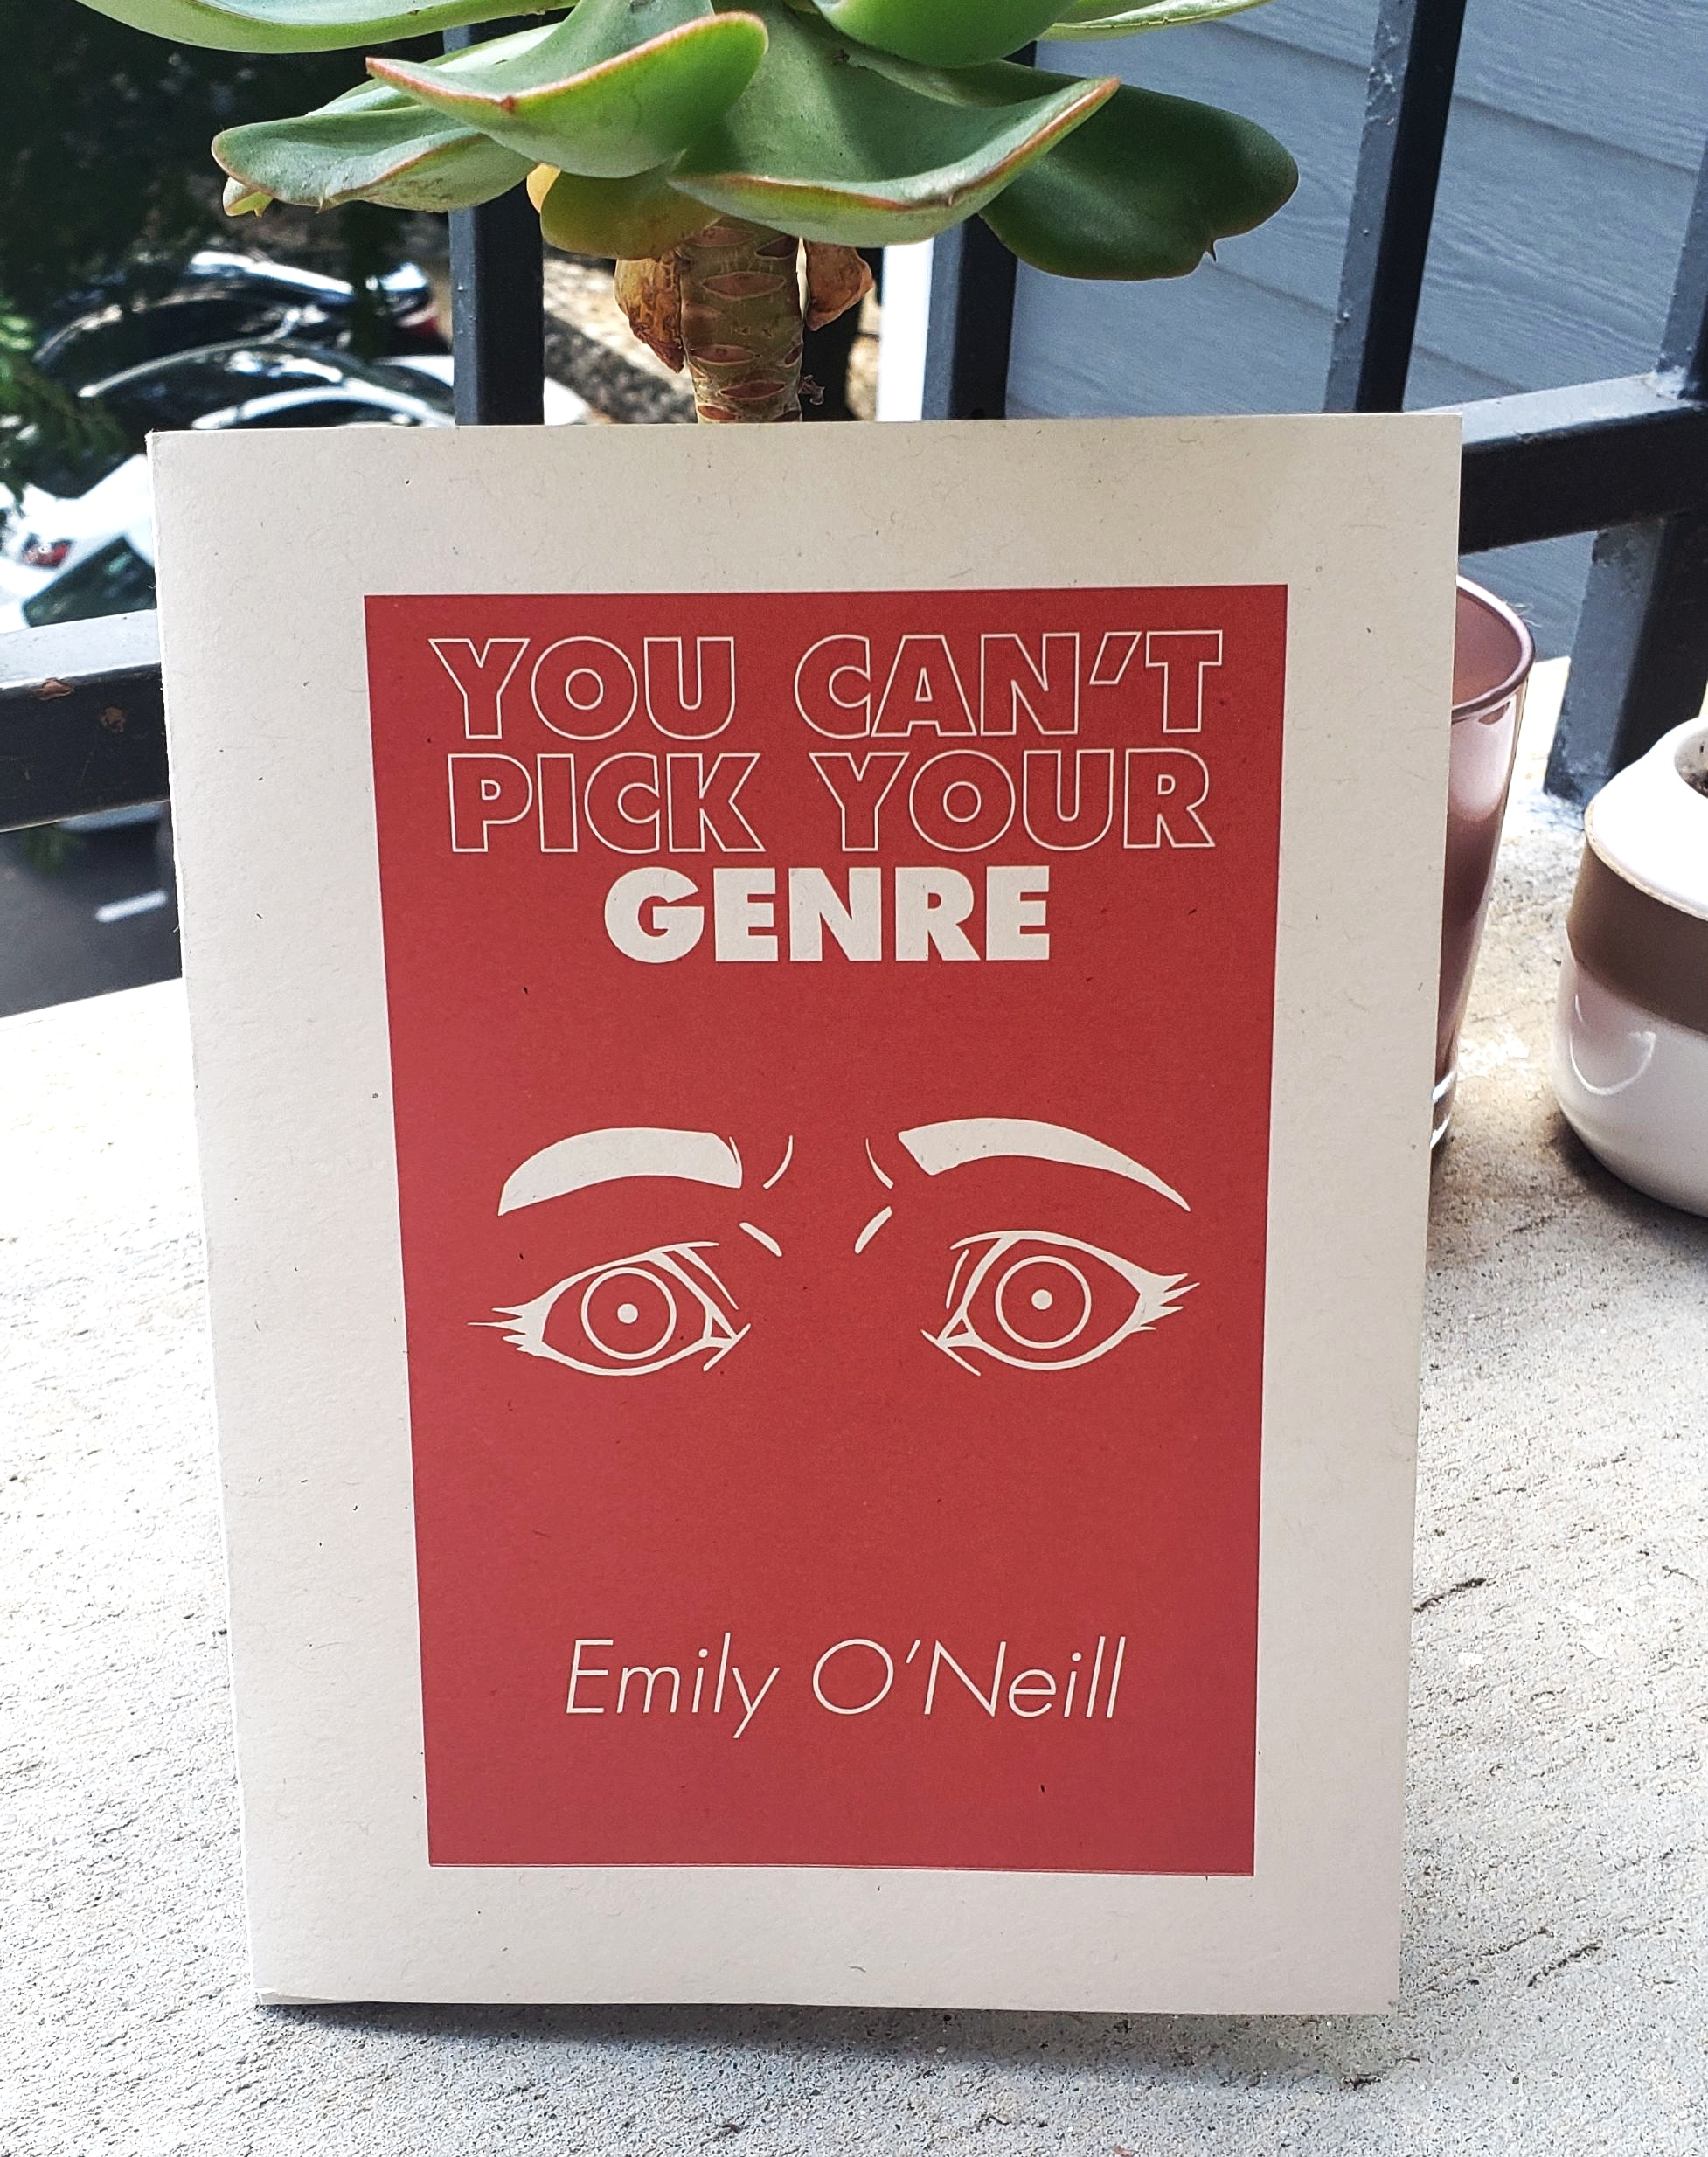 You Can't Pick Your Genre by Emily O'Neill